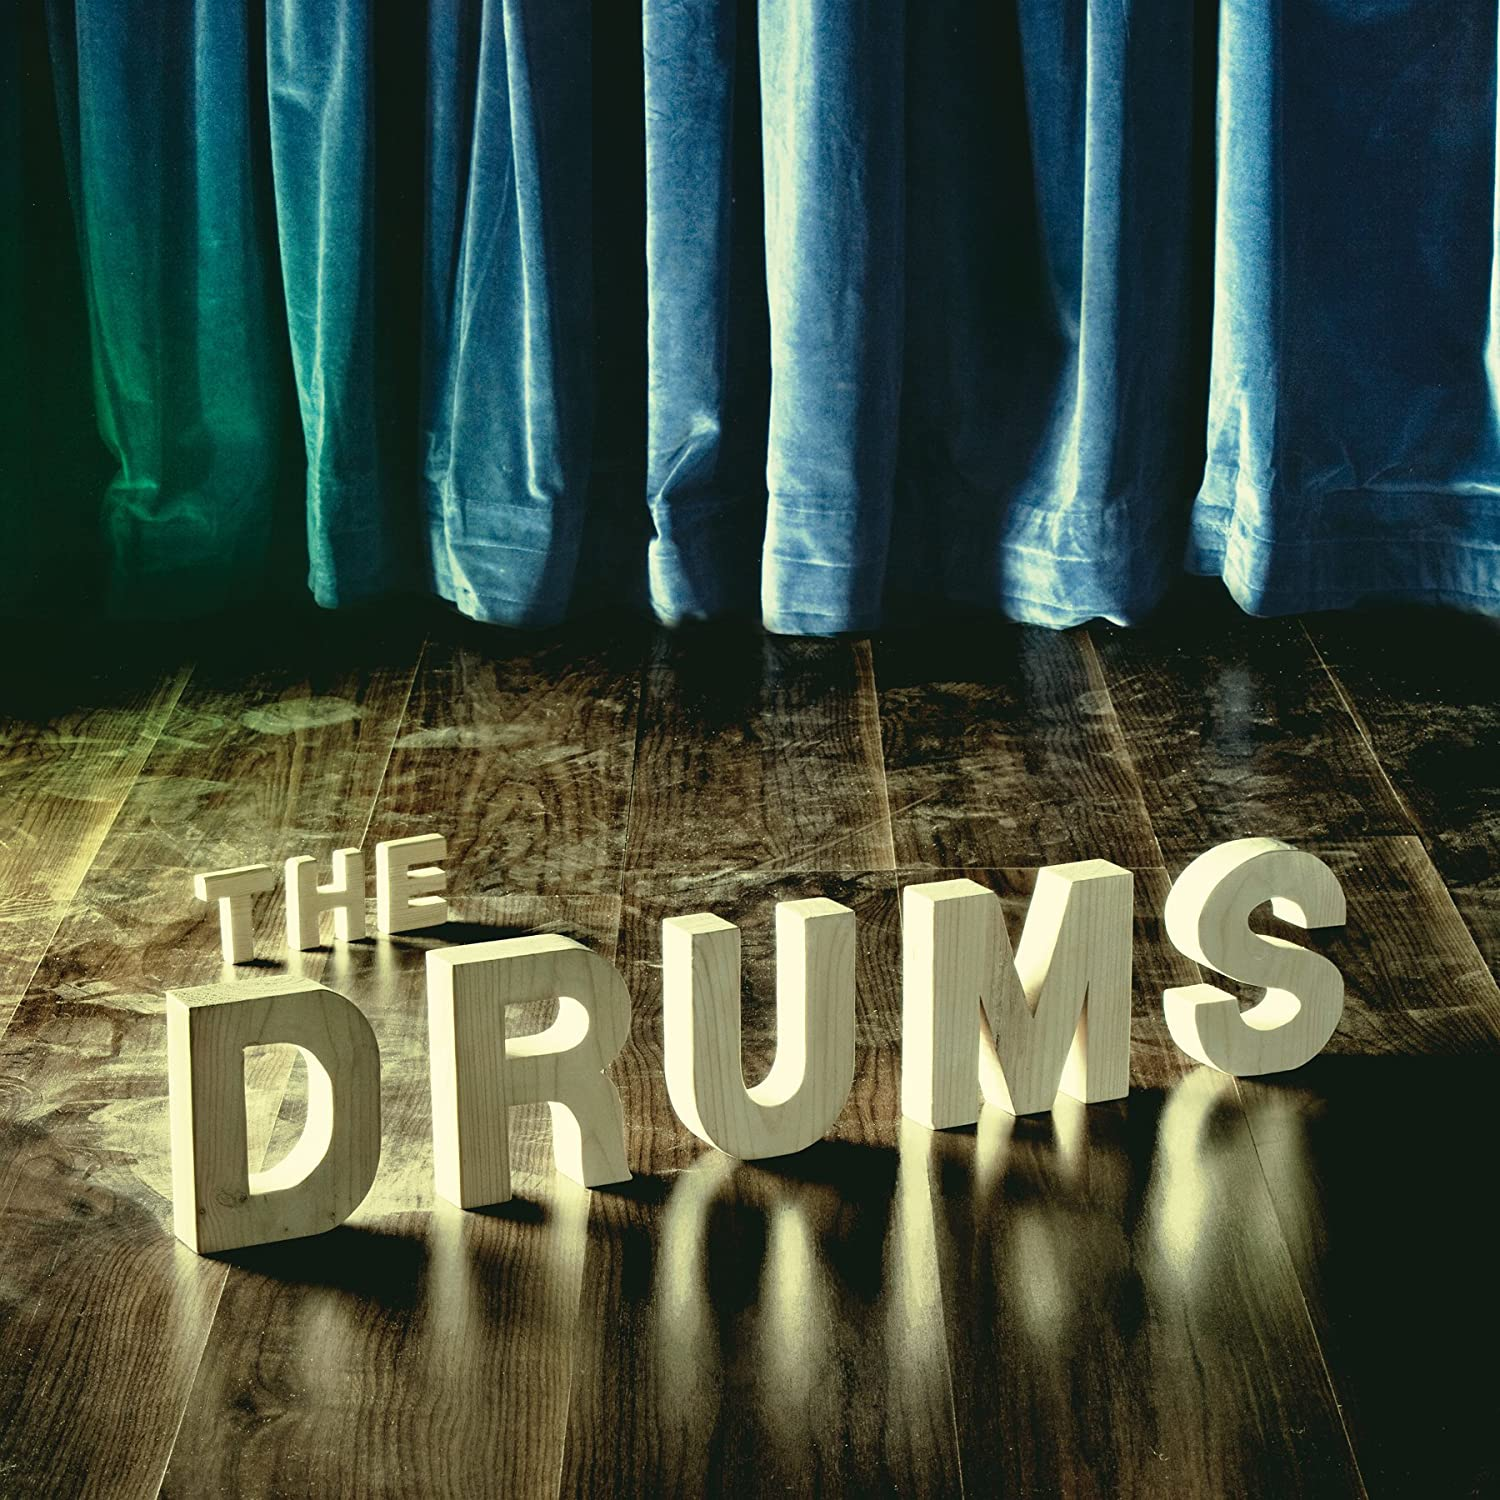 The Drums, The Drums